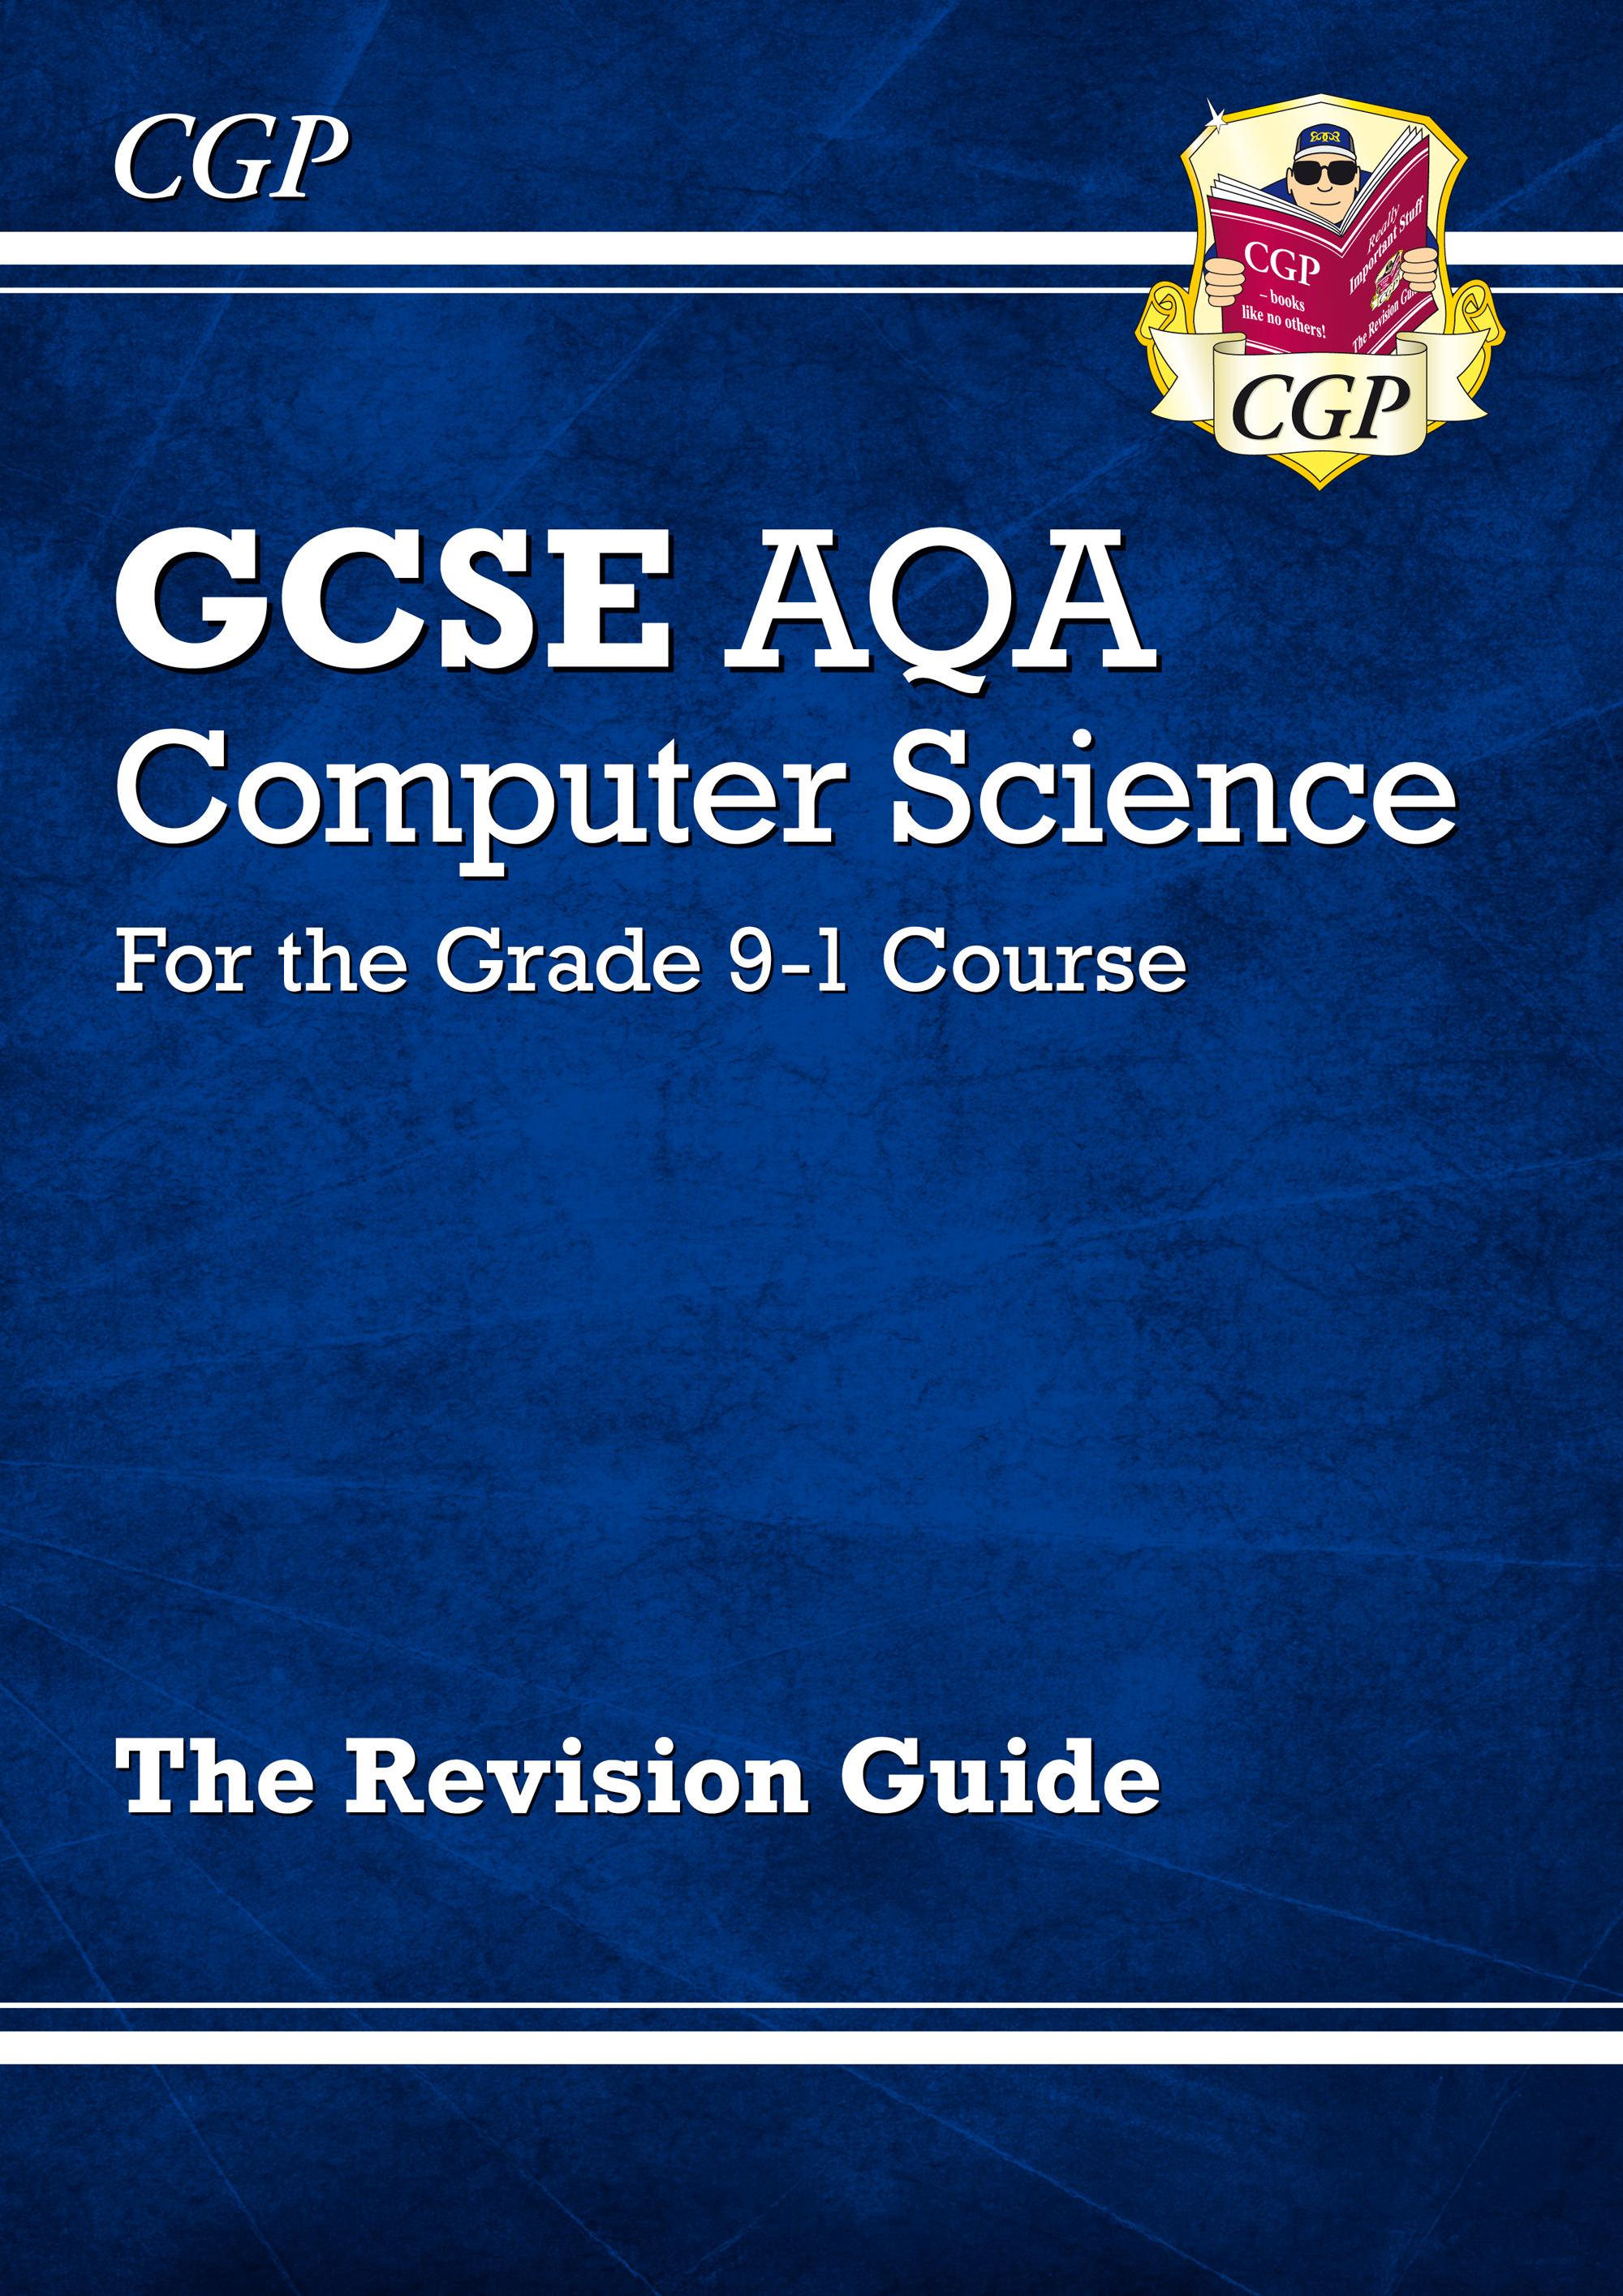 COAR41 - New GCSE Computer Science AQA Revision Guide - for the Grade 9-1 Course